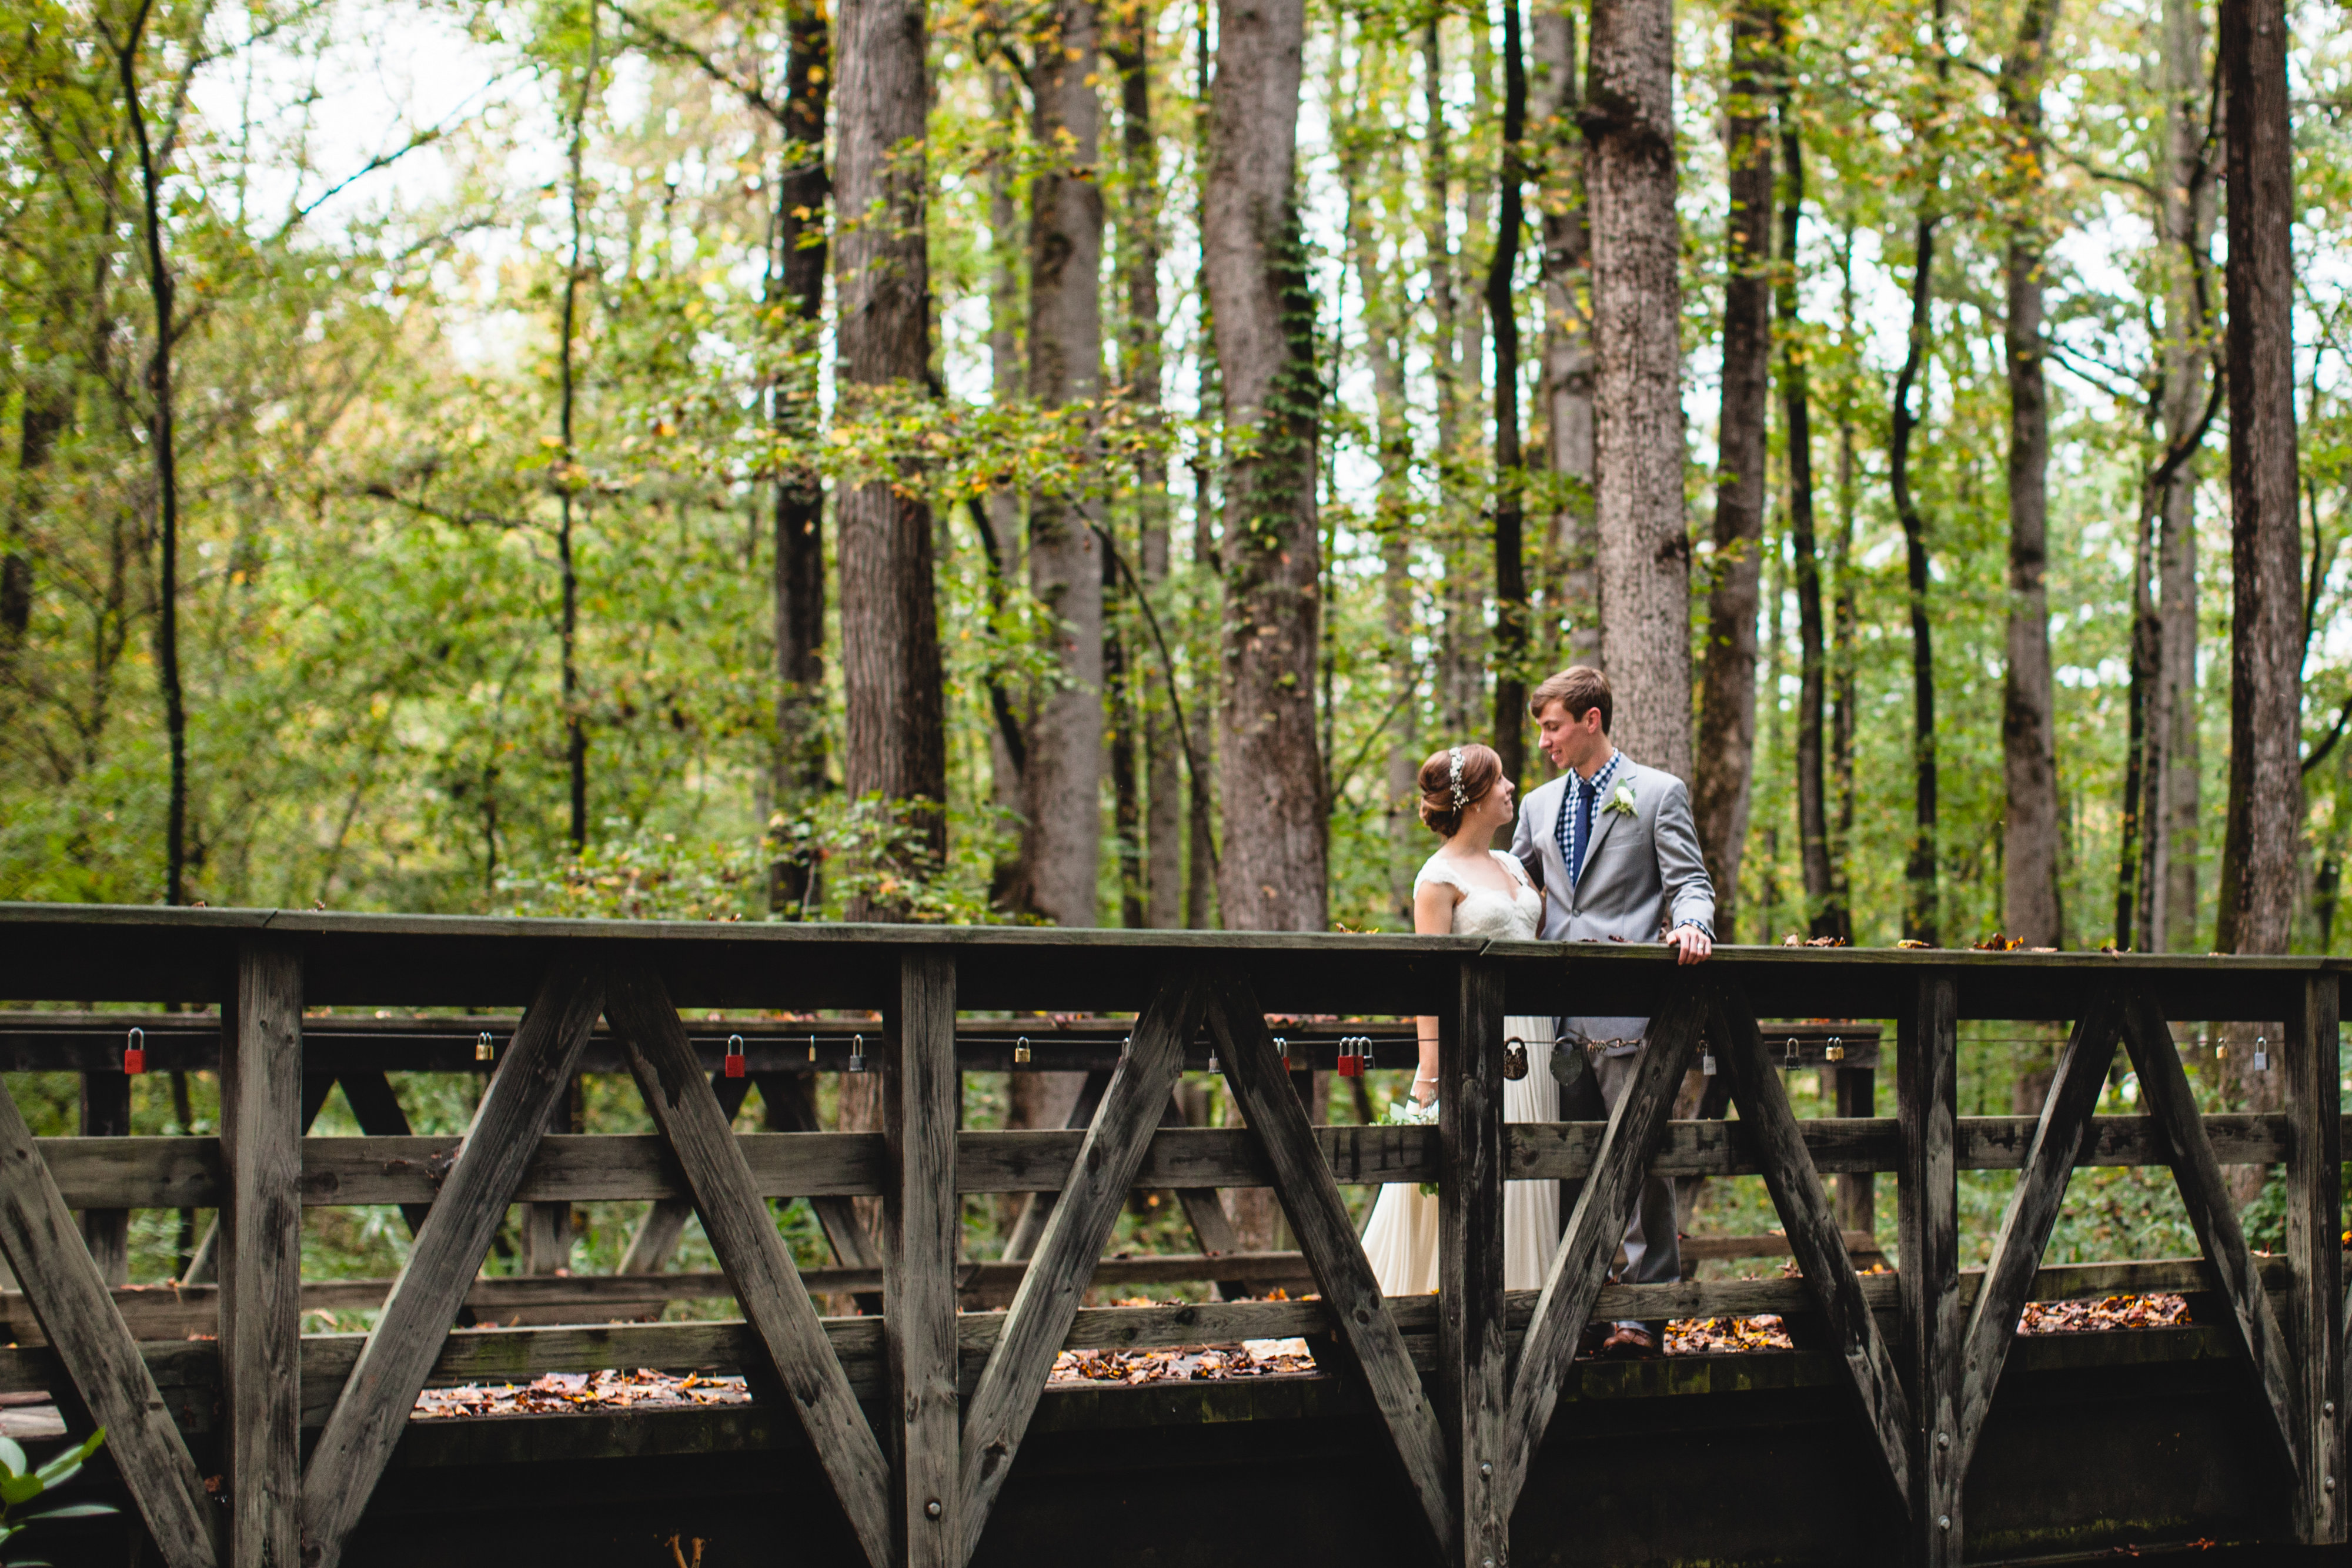 View More: http://kaitiebryant.pass.us/riehl-cookwedding